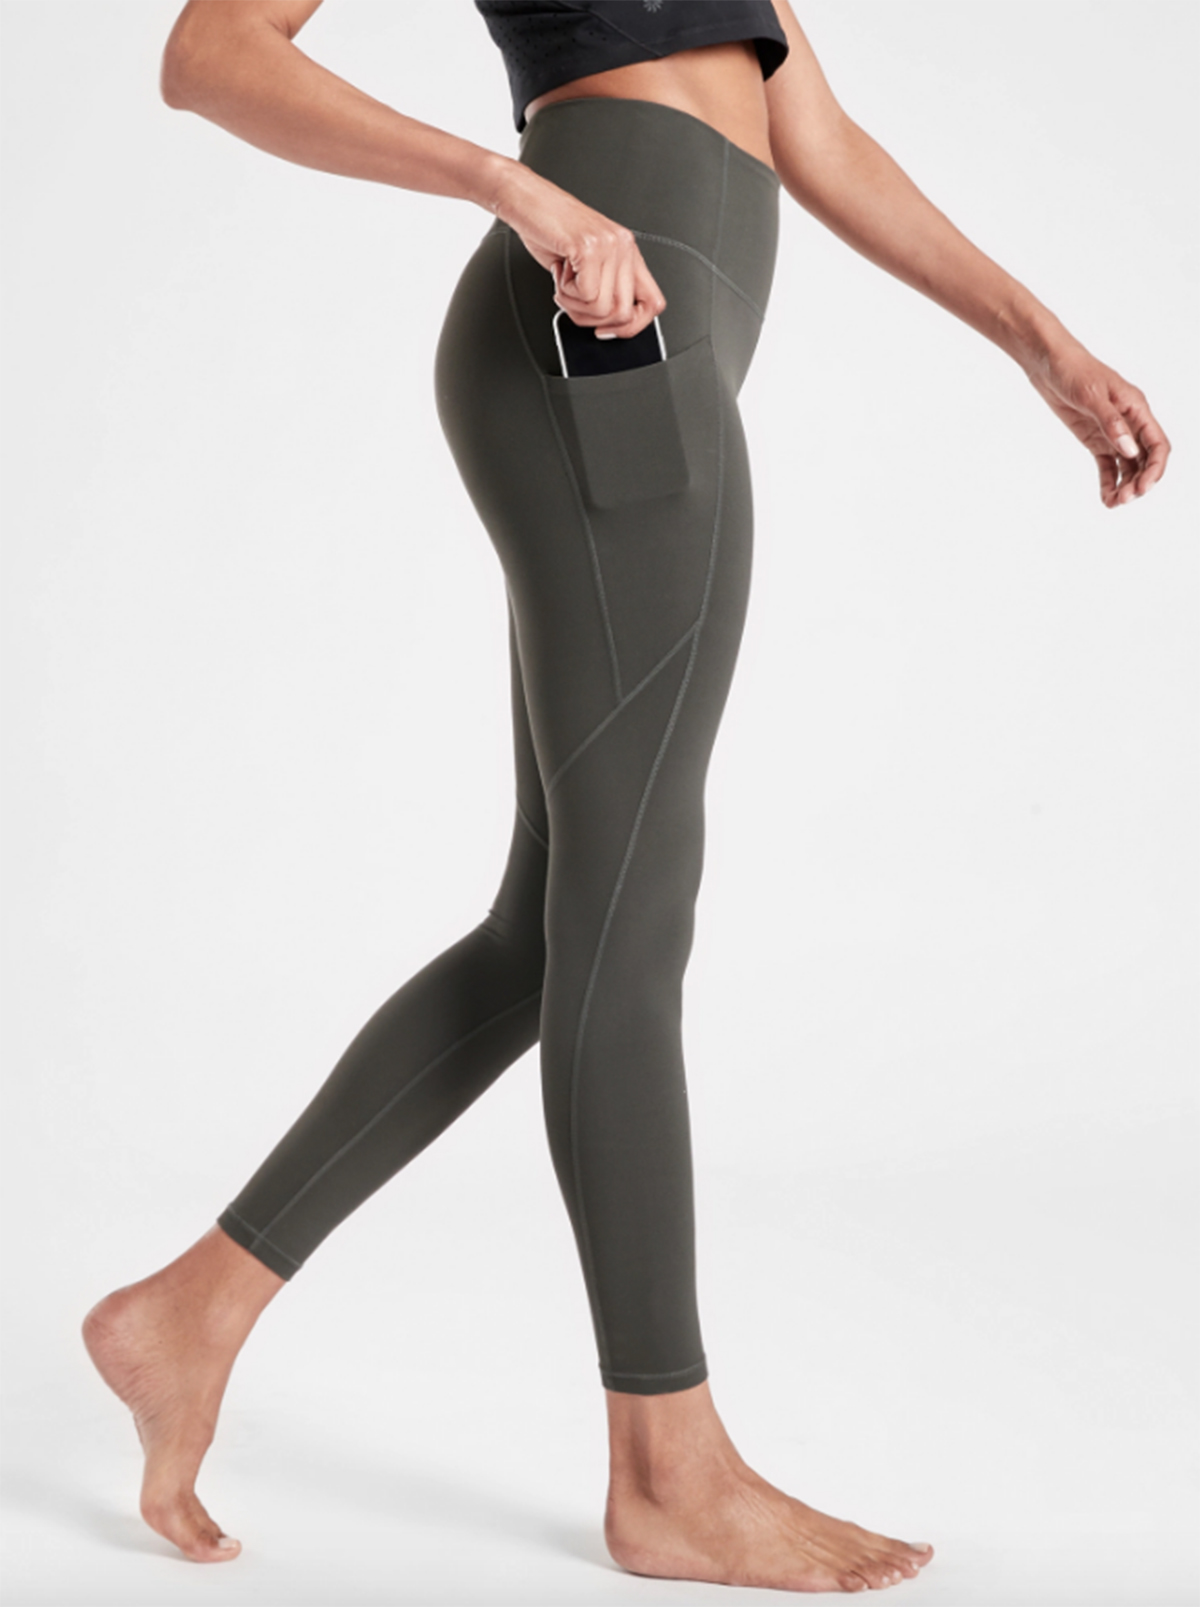 These Yoga Pants Have 3 000 Reviews And Pockets